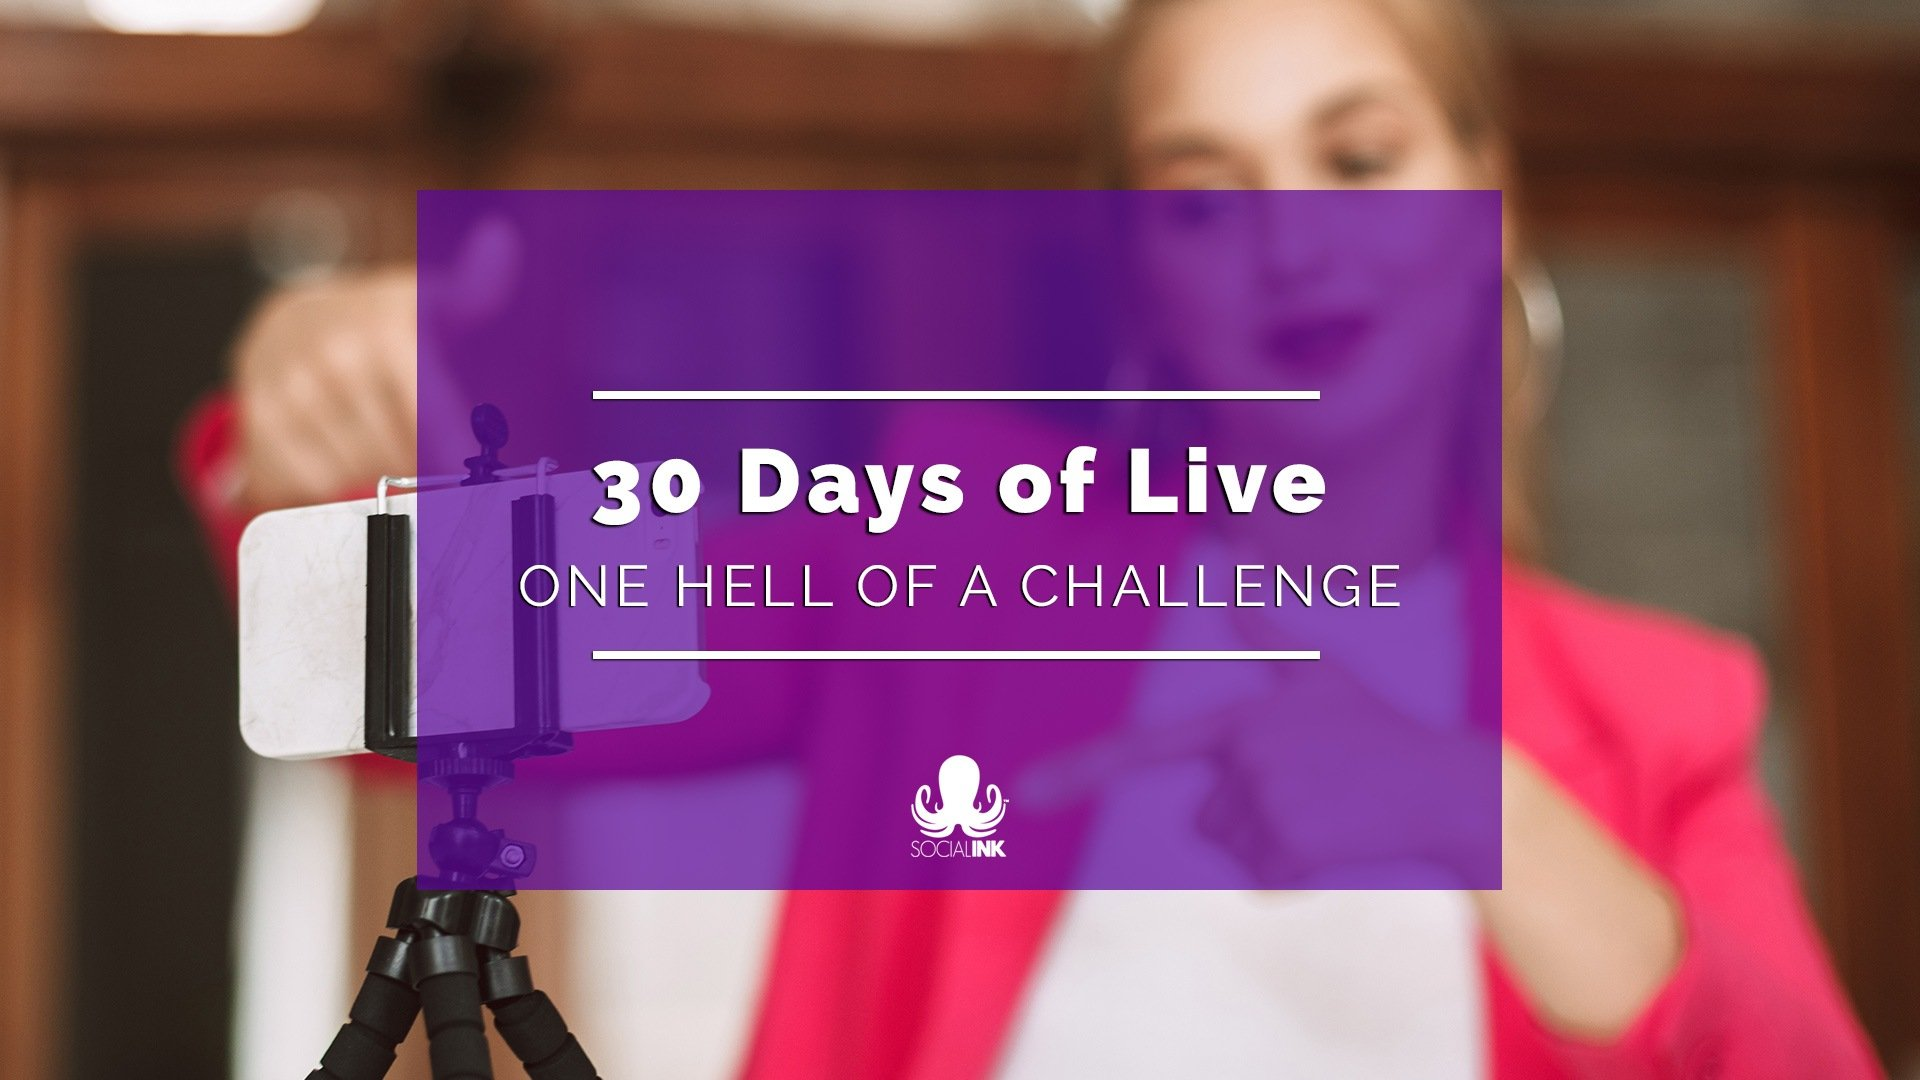 30 Days Of Live Streaming: One Hell of a Challenge